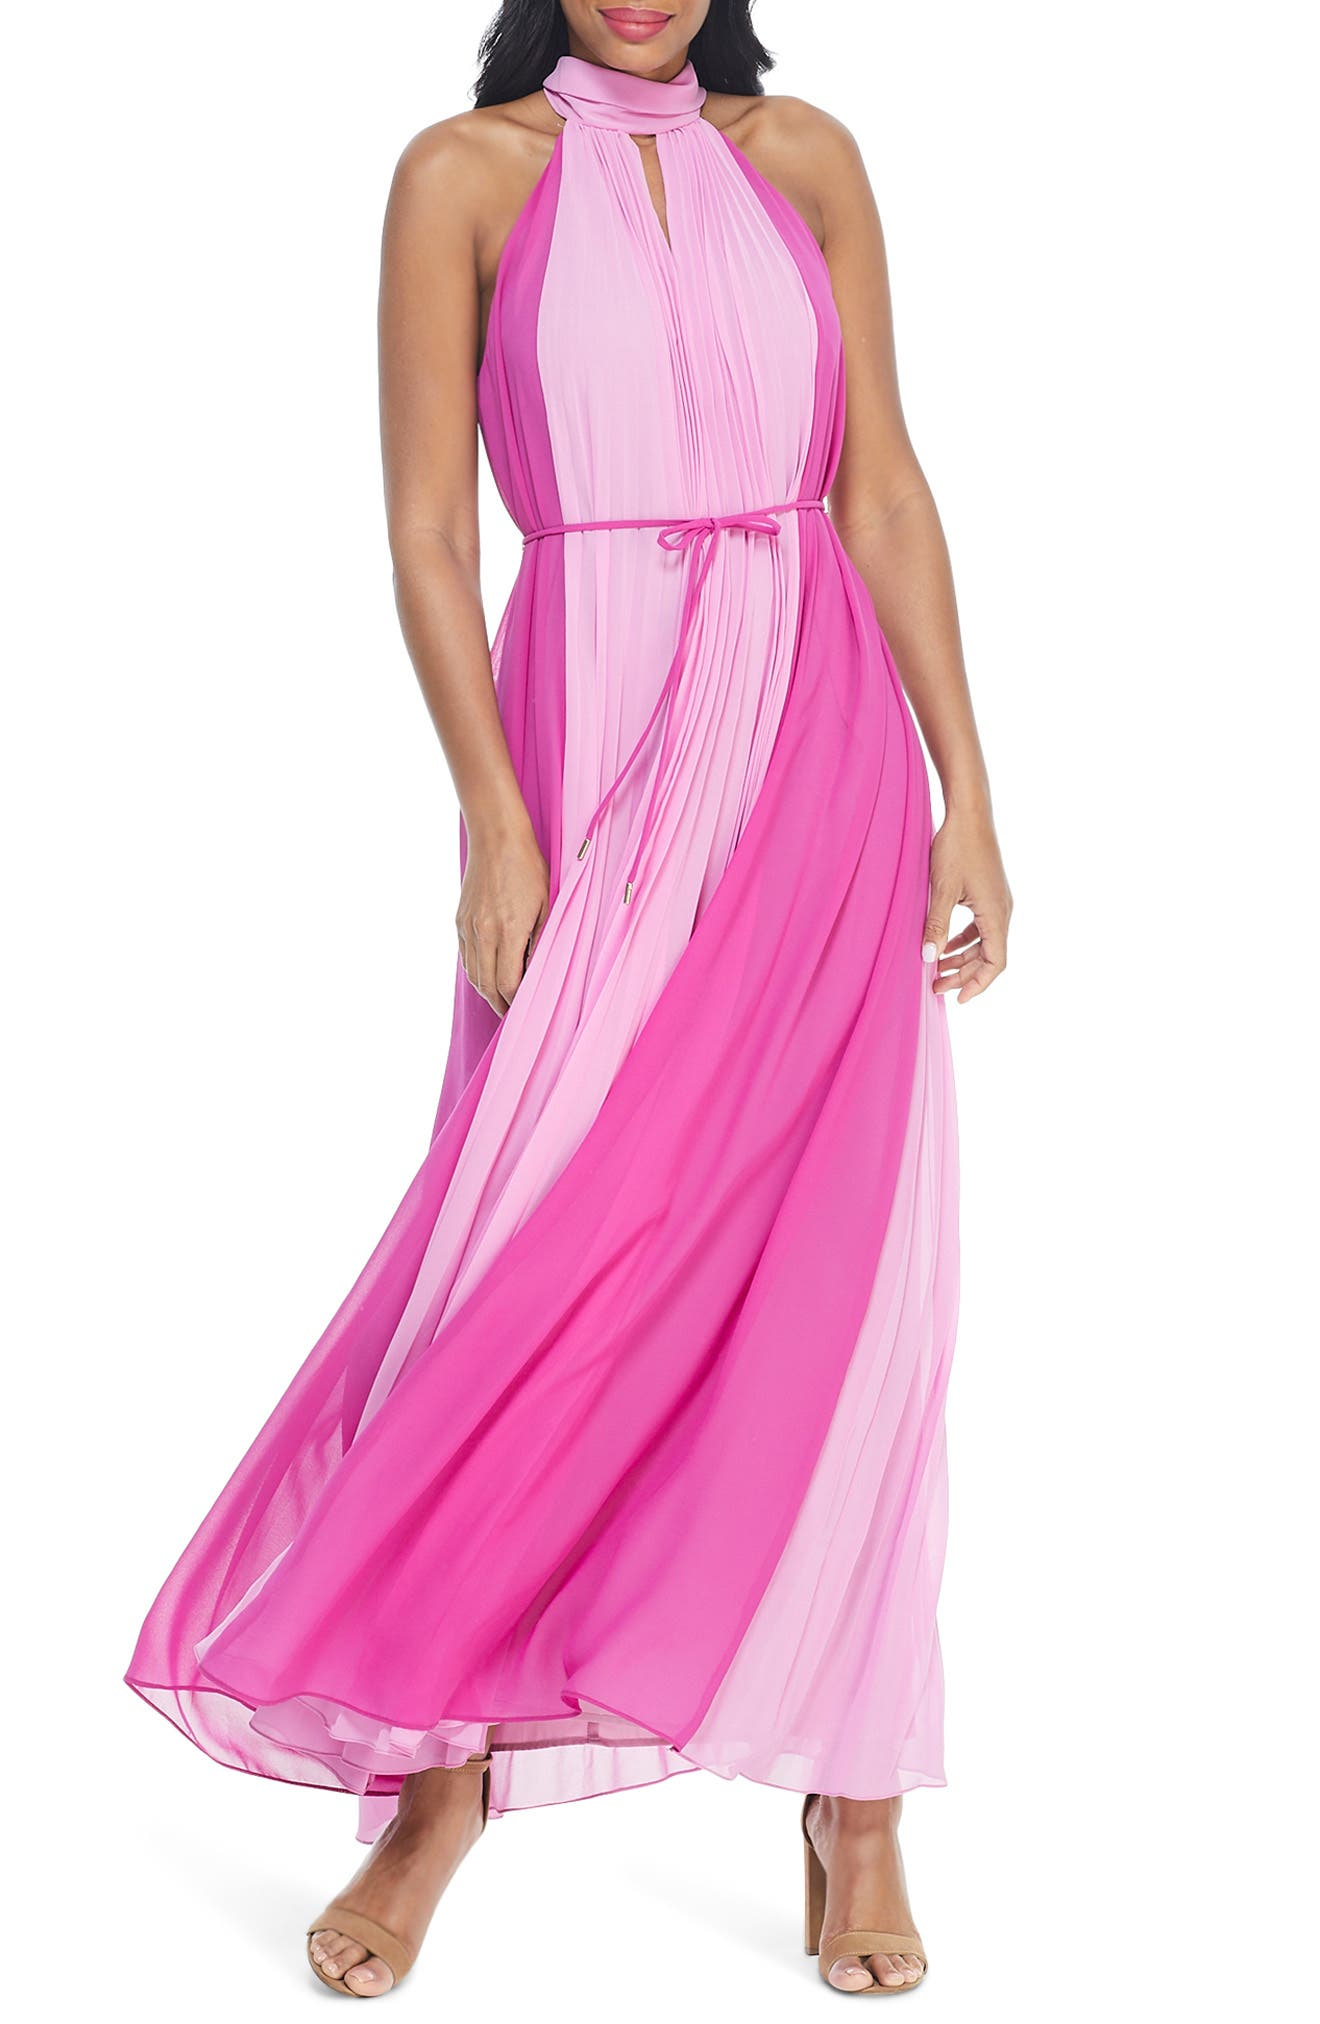 1960s Cocktail, Party, Prom, Evening Dresses Womens Maggy London Katerina Colorblock Halter Neck Maxi Dress Size 14 - Pink $148.00 AT vintagedancer.com